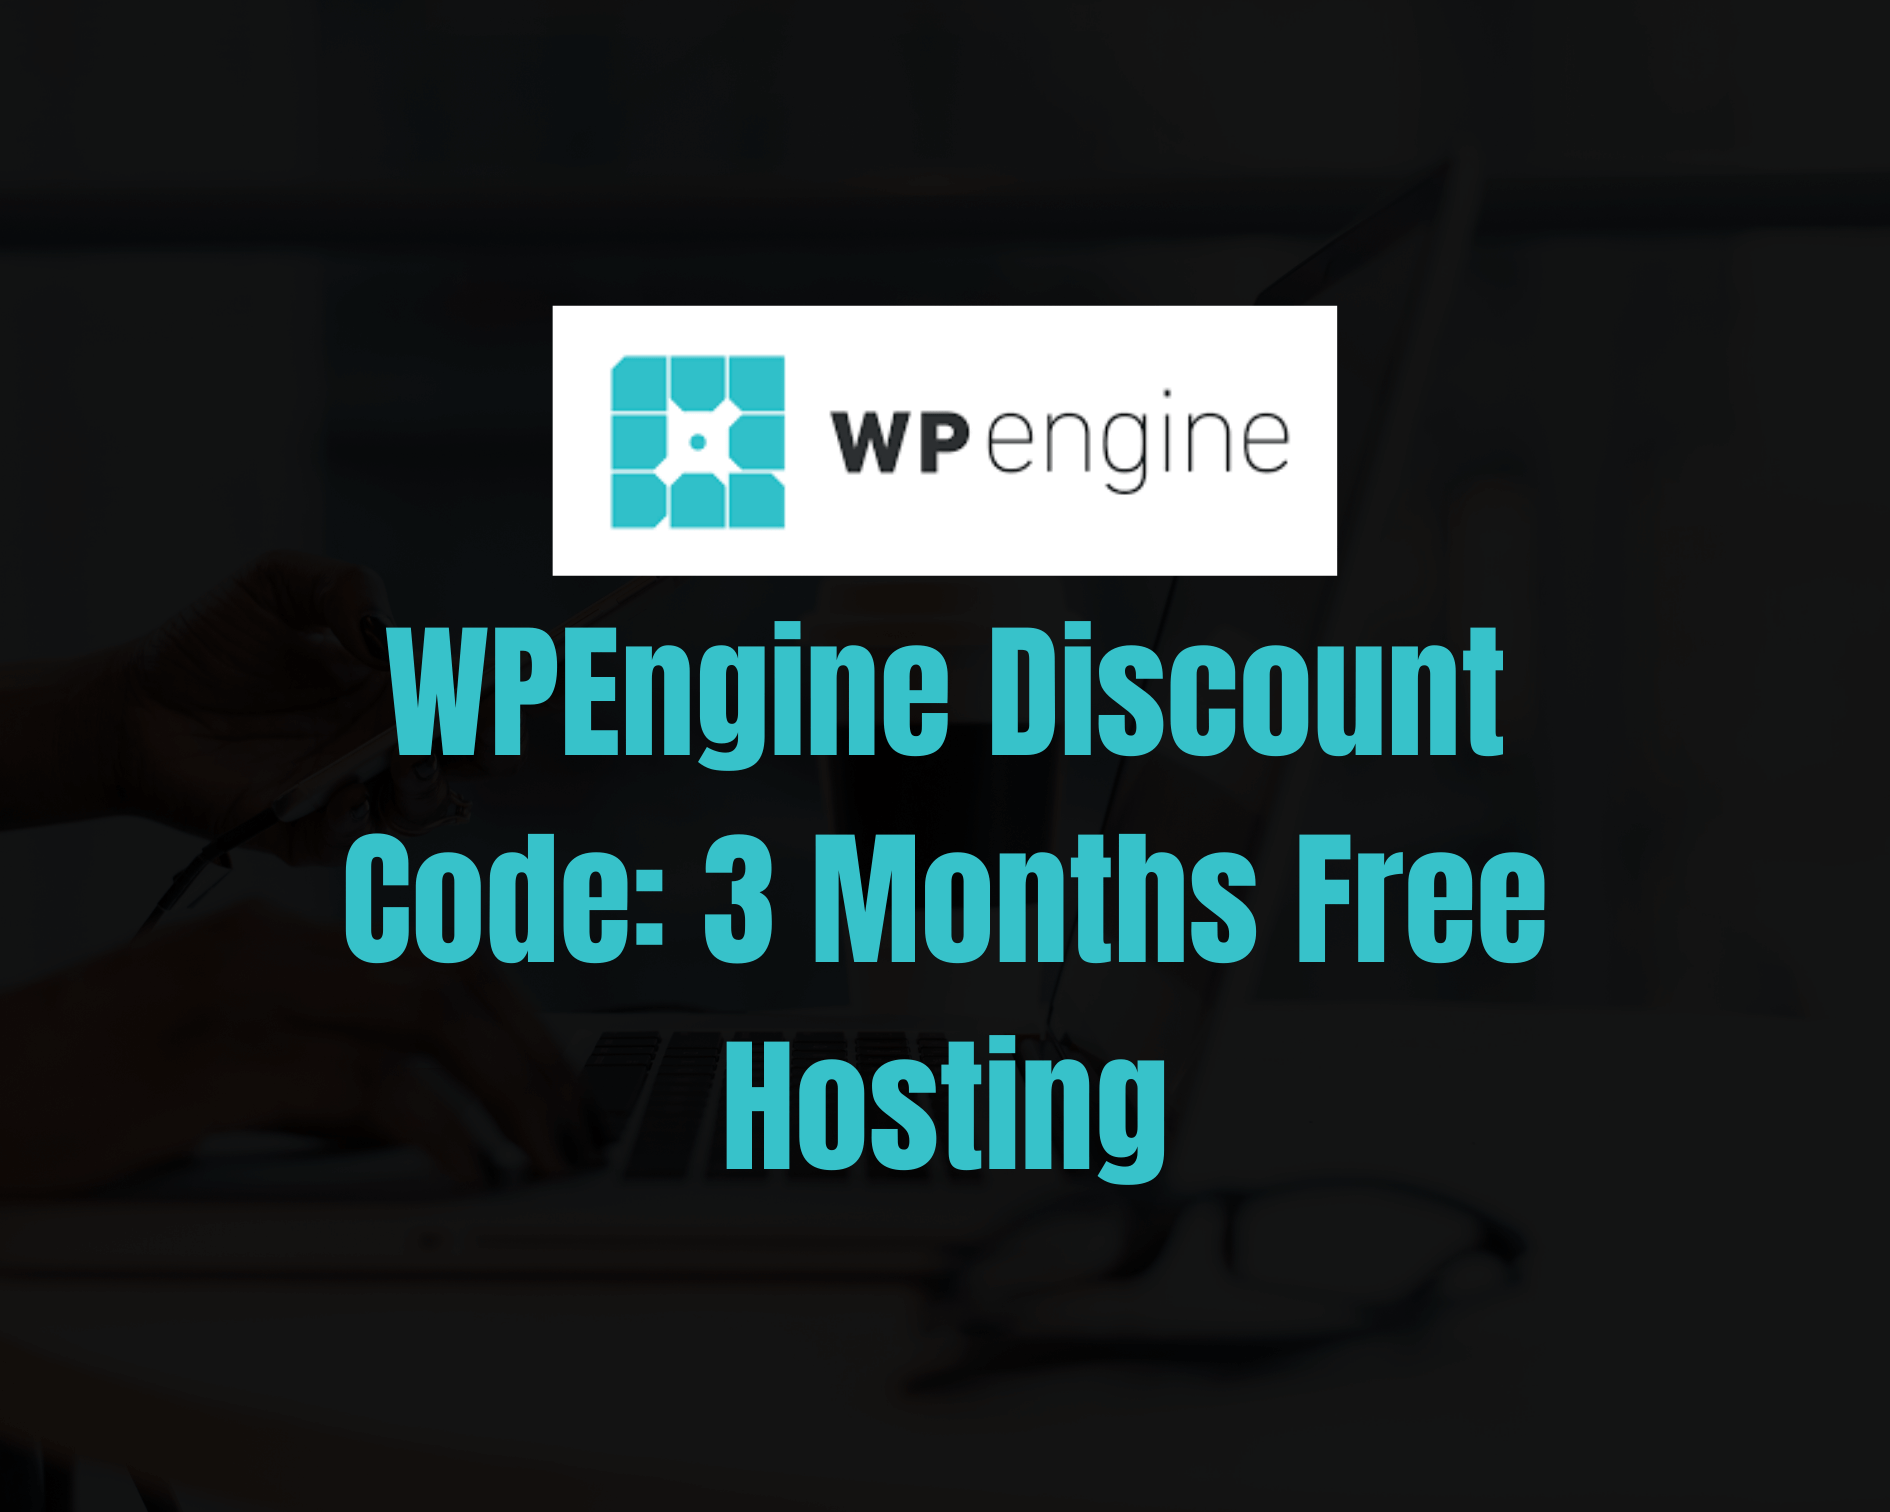 WPEngine Coupon Code 2020: Get 3 Months Free Hosting